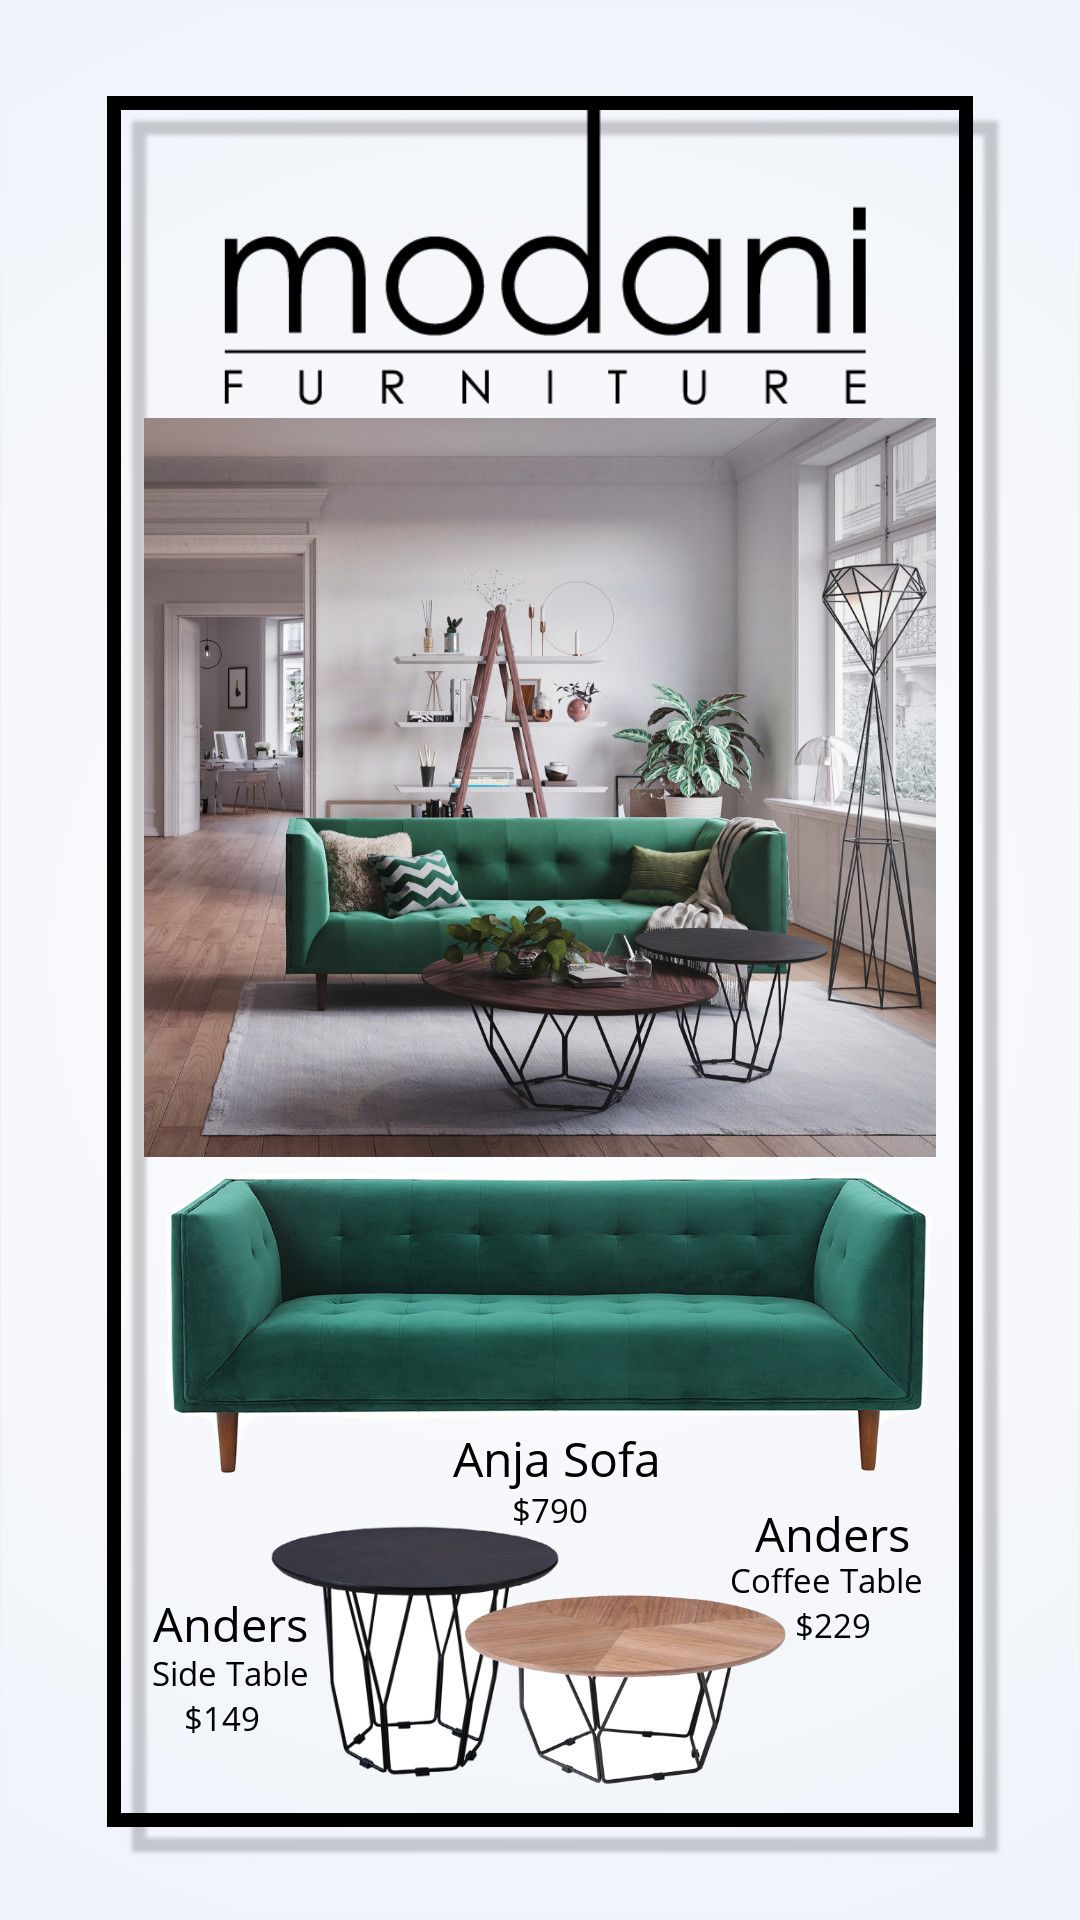 Take a walk on the wild side! The Anja Sofa with all the